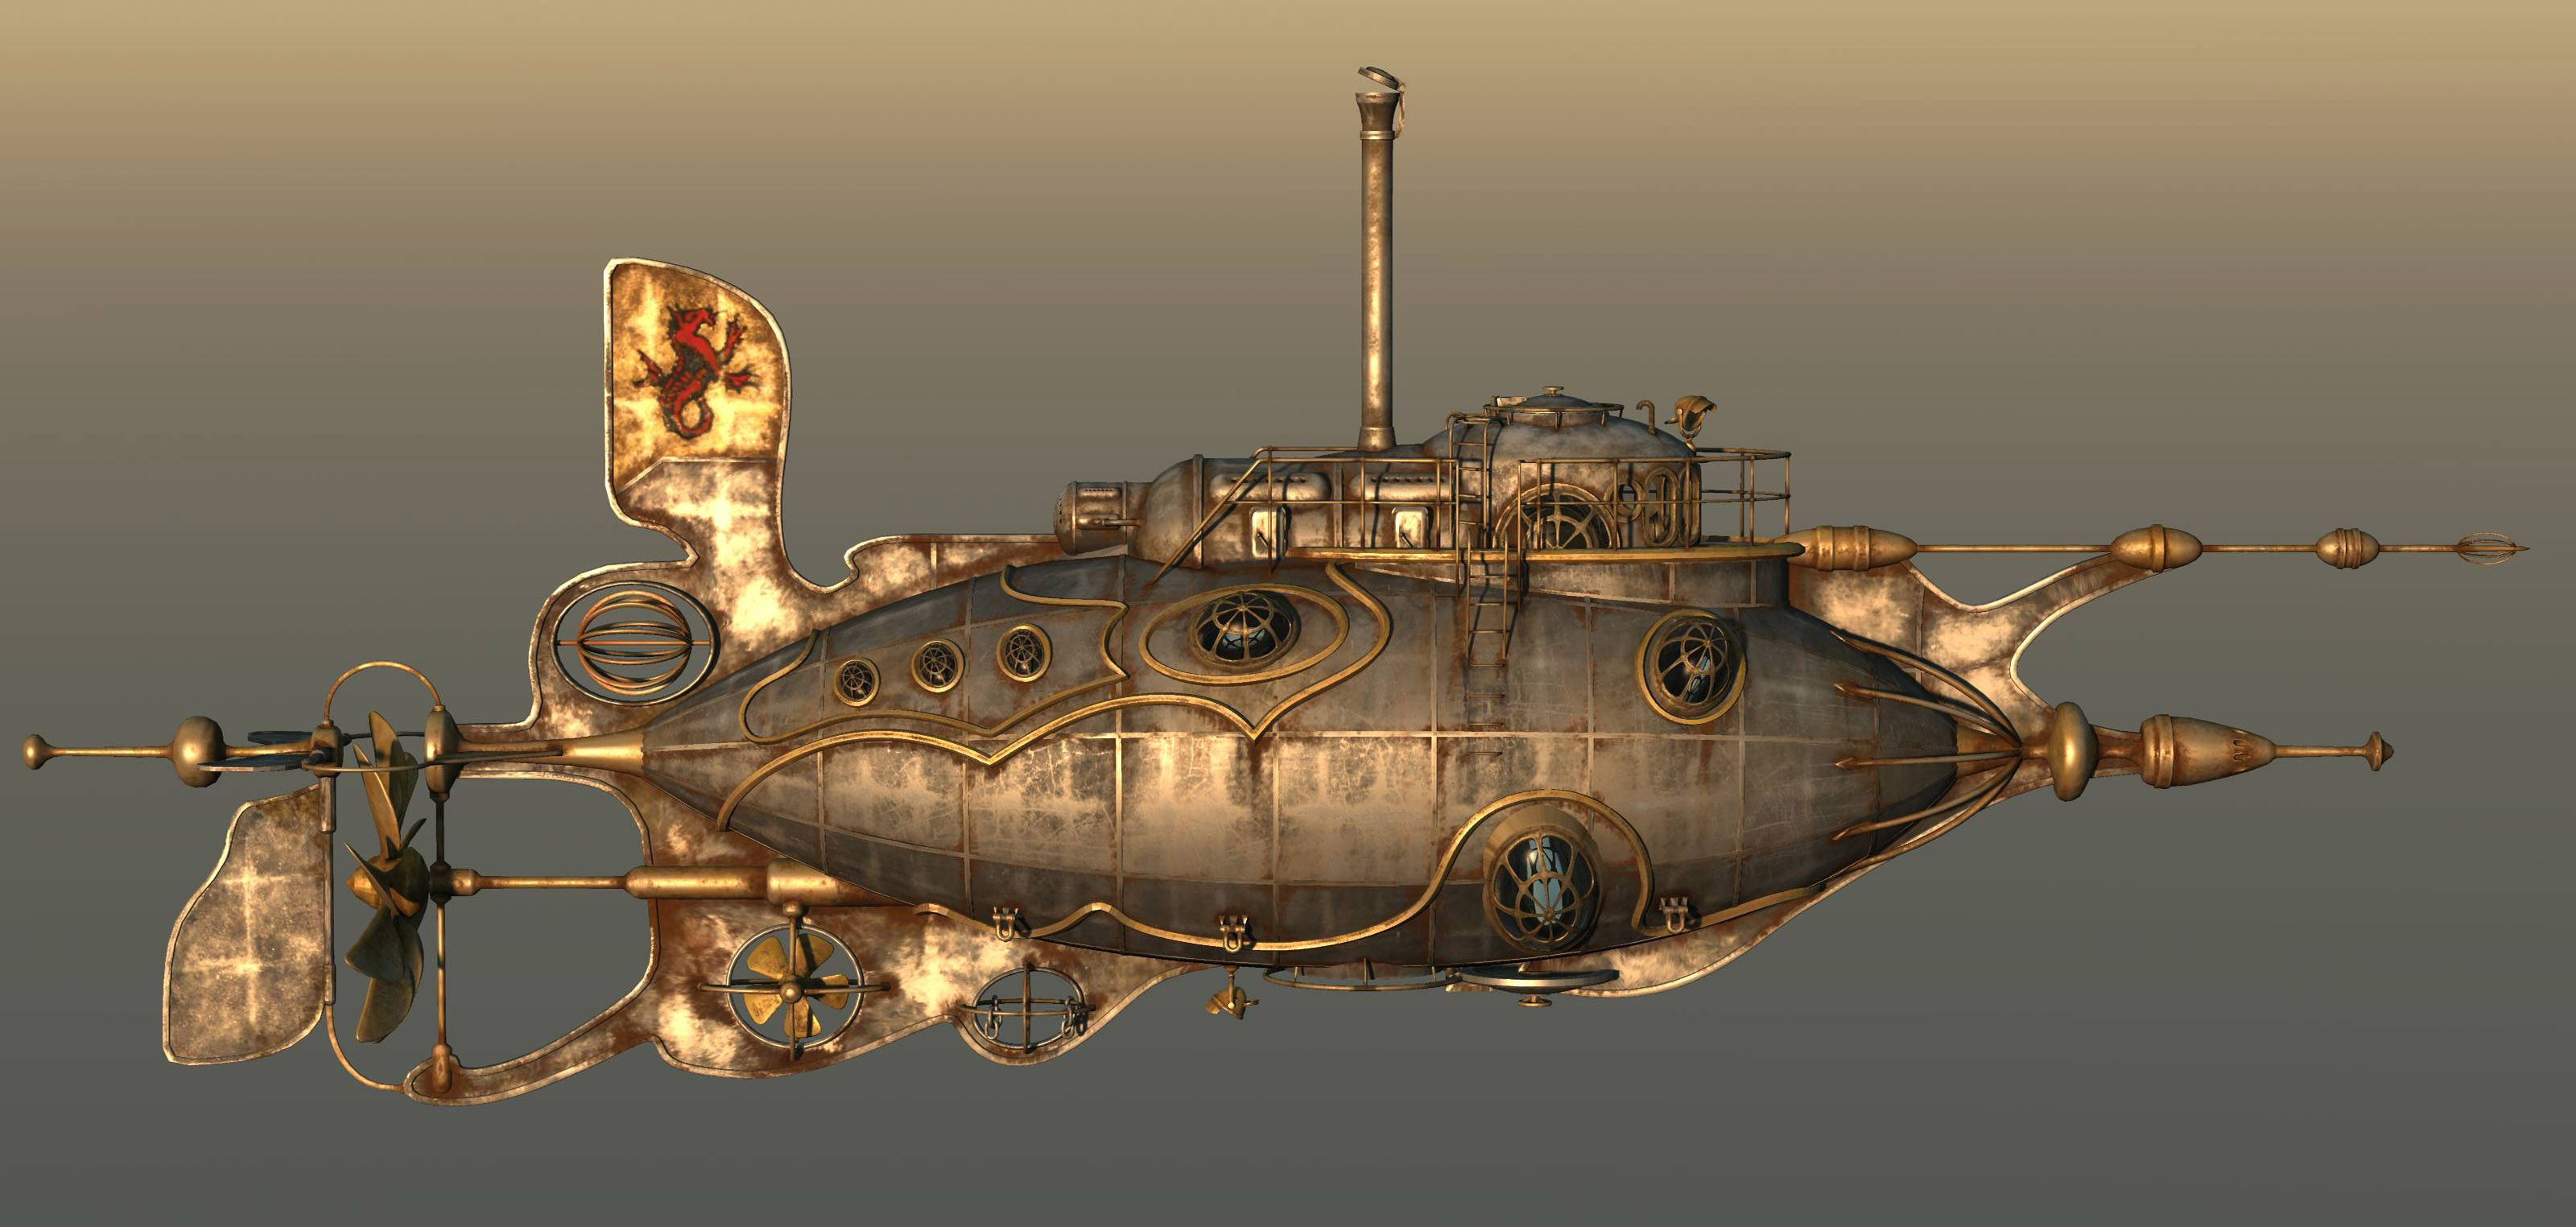 Steampunk is a sub-genre of fantasy and science fiction based on the Victorian era in England when steam engines were used. This model can be used as an ...